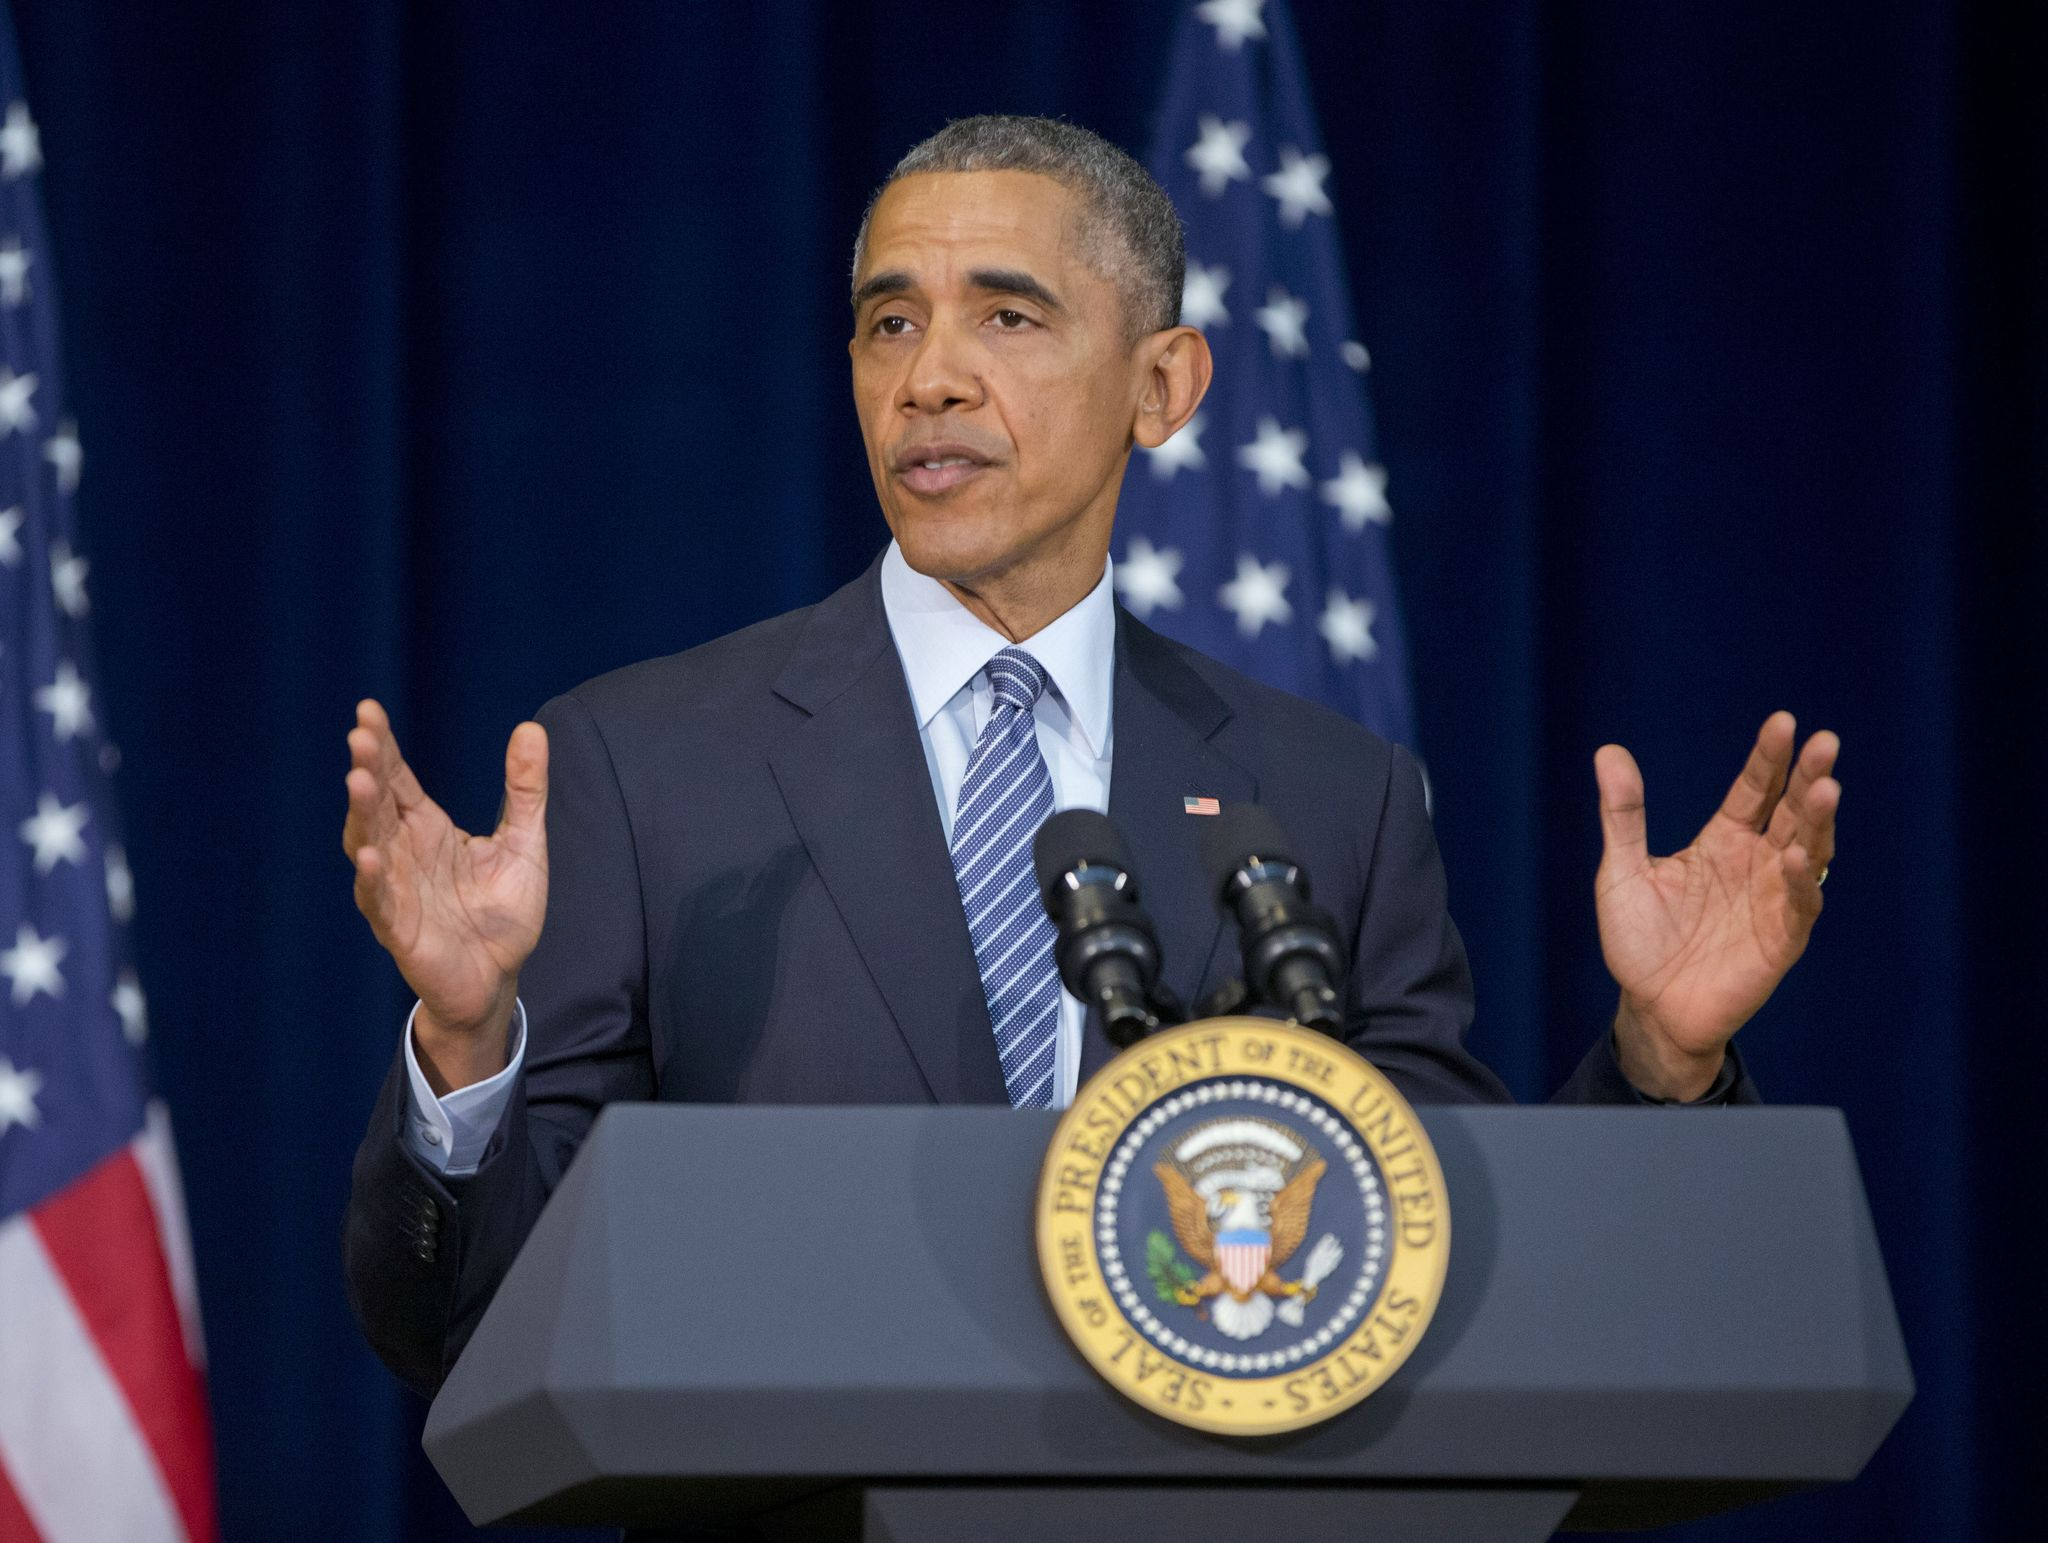 Obama praises his diplomacy with Iran and Cuba while angering ...